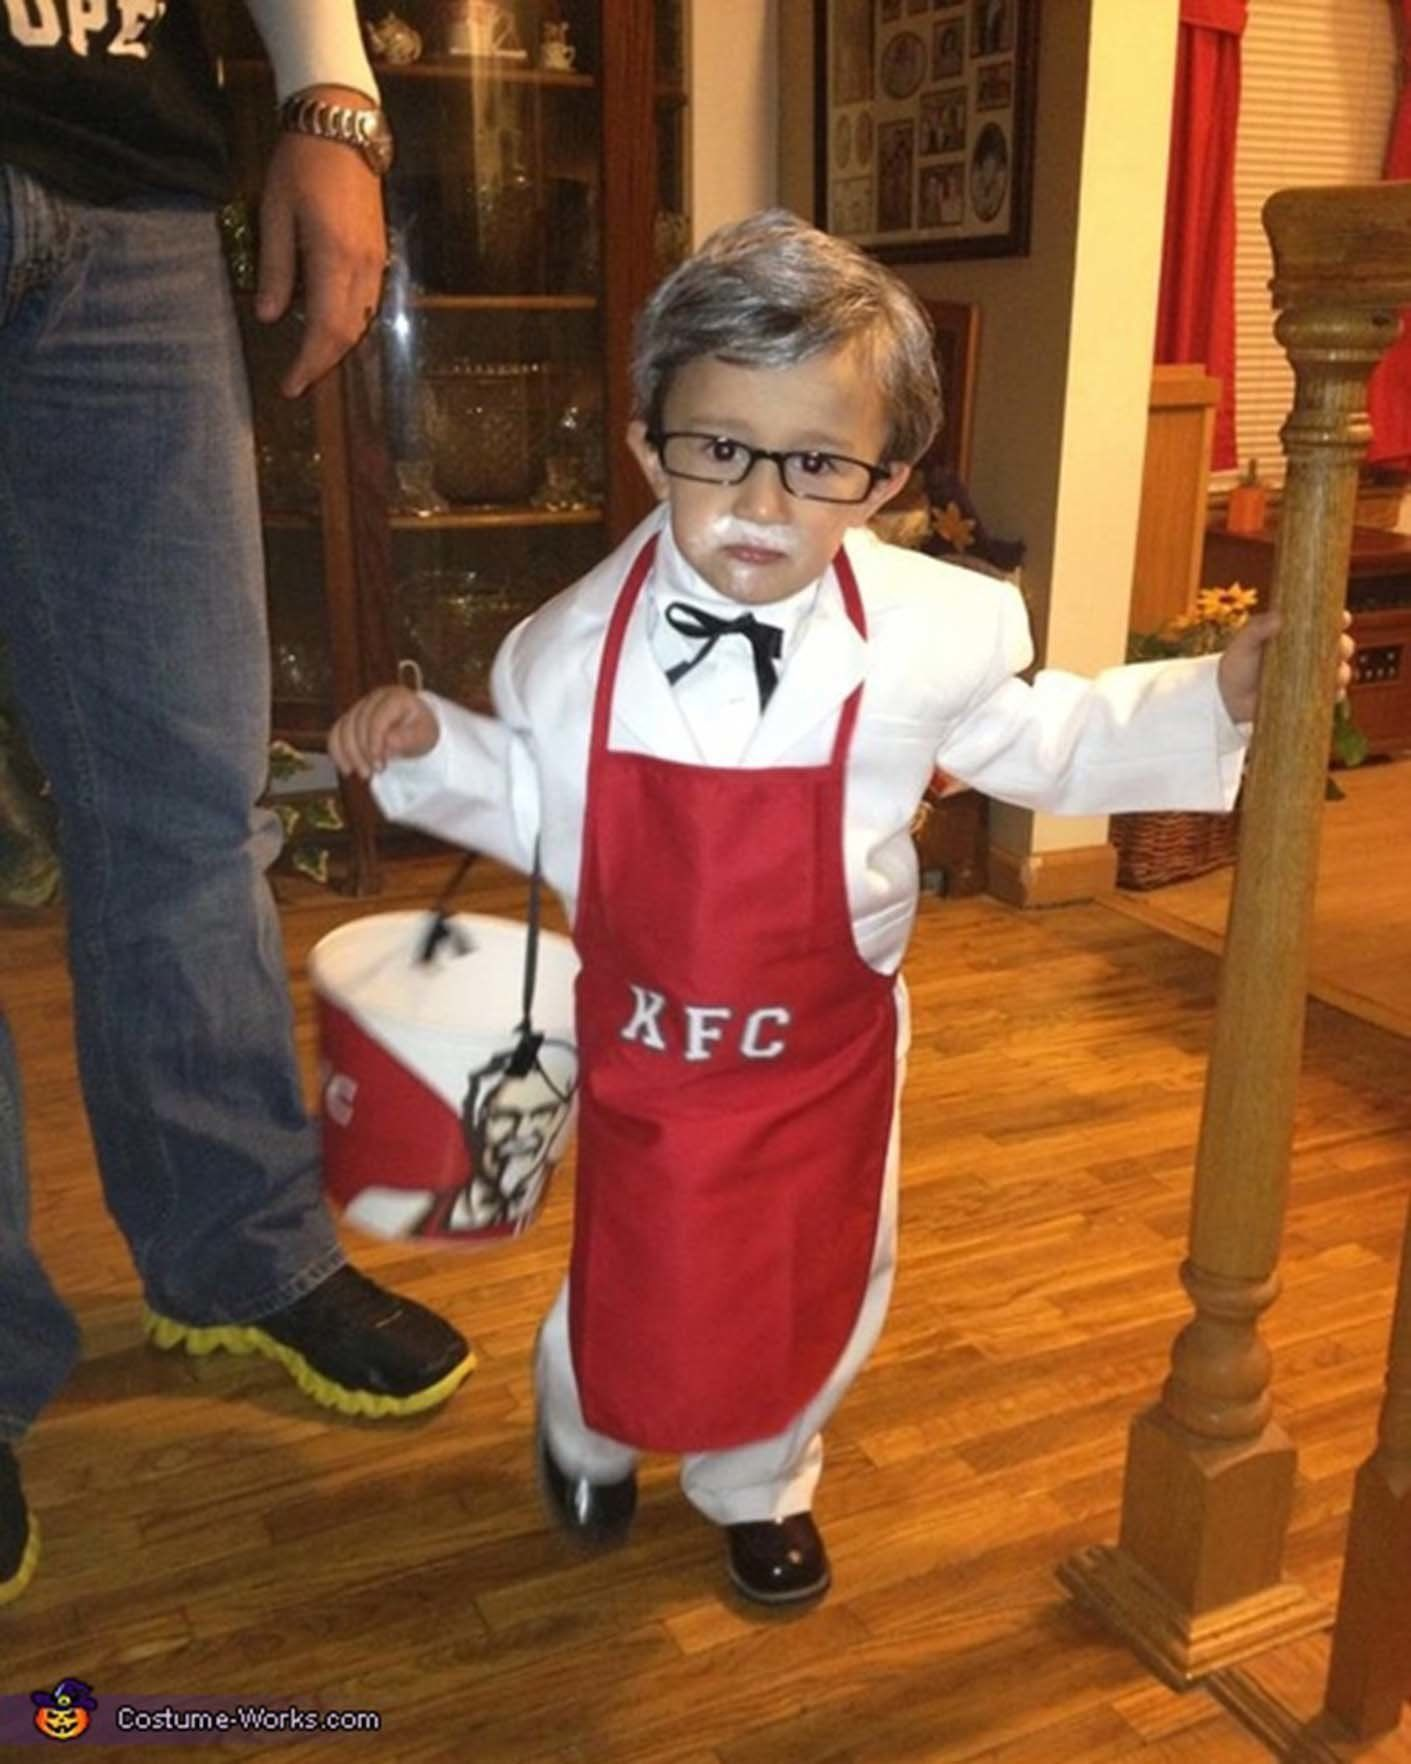 Neat Kids Colonel Costume Works Halloween Costumes Glasses Huffpost Life Colonel Sanders Costume Australia Colonel Sanders Costume Canada nice food Colonel Sanders Costume